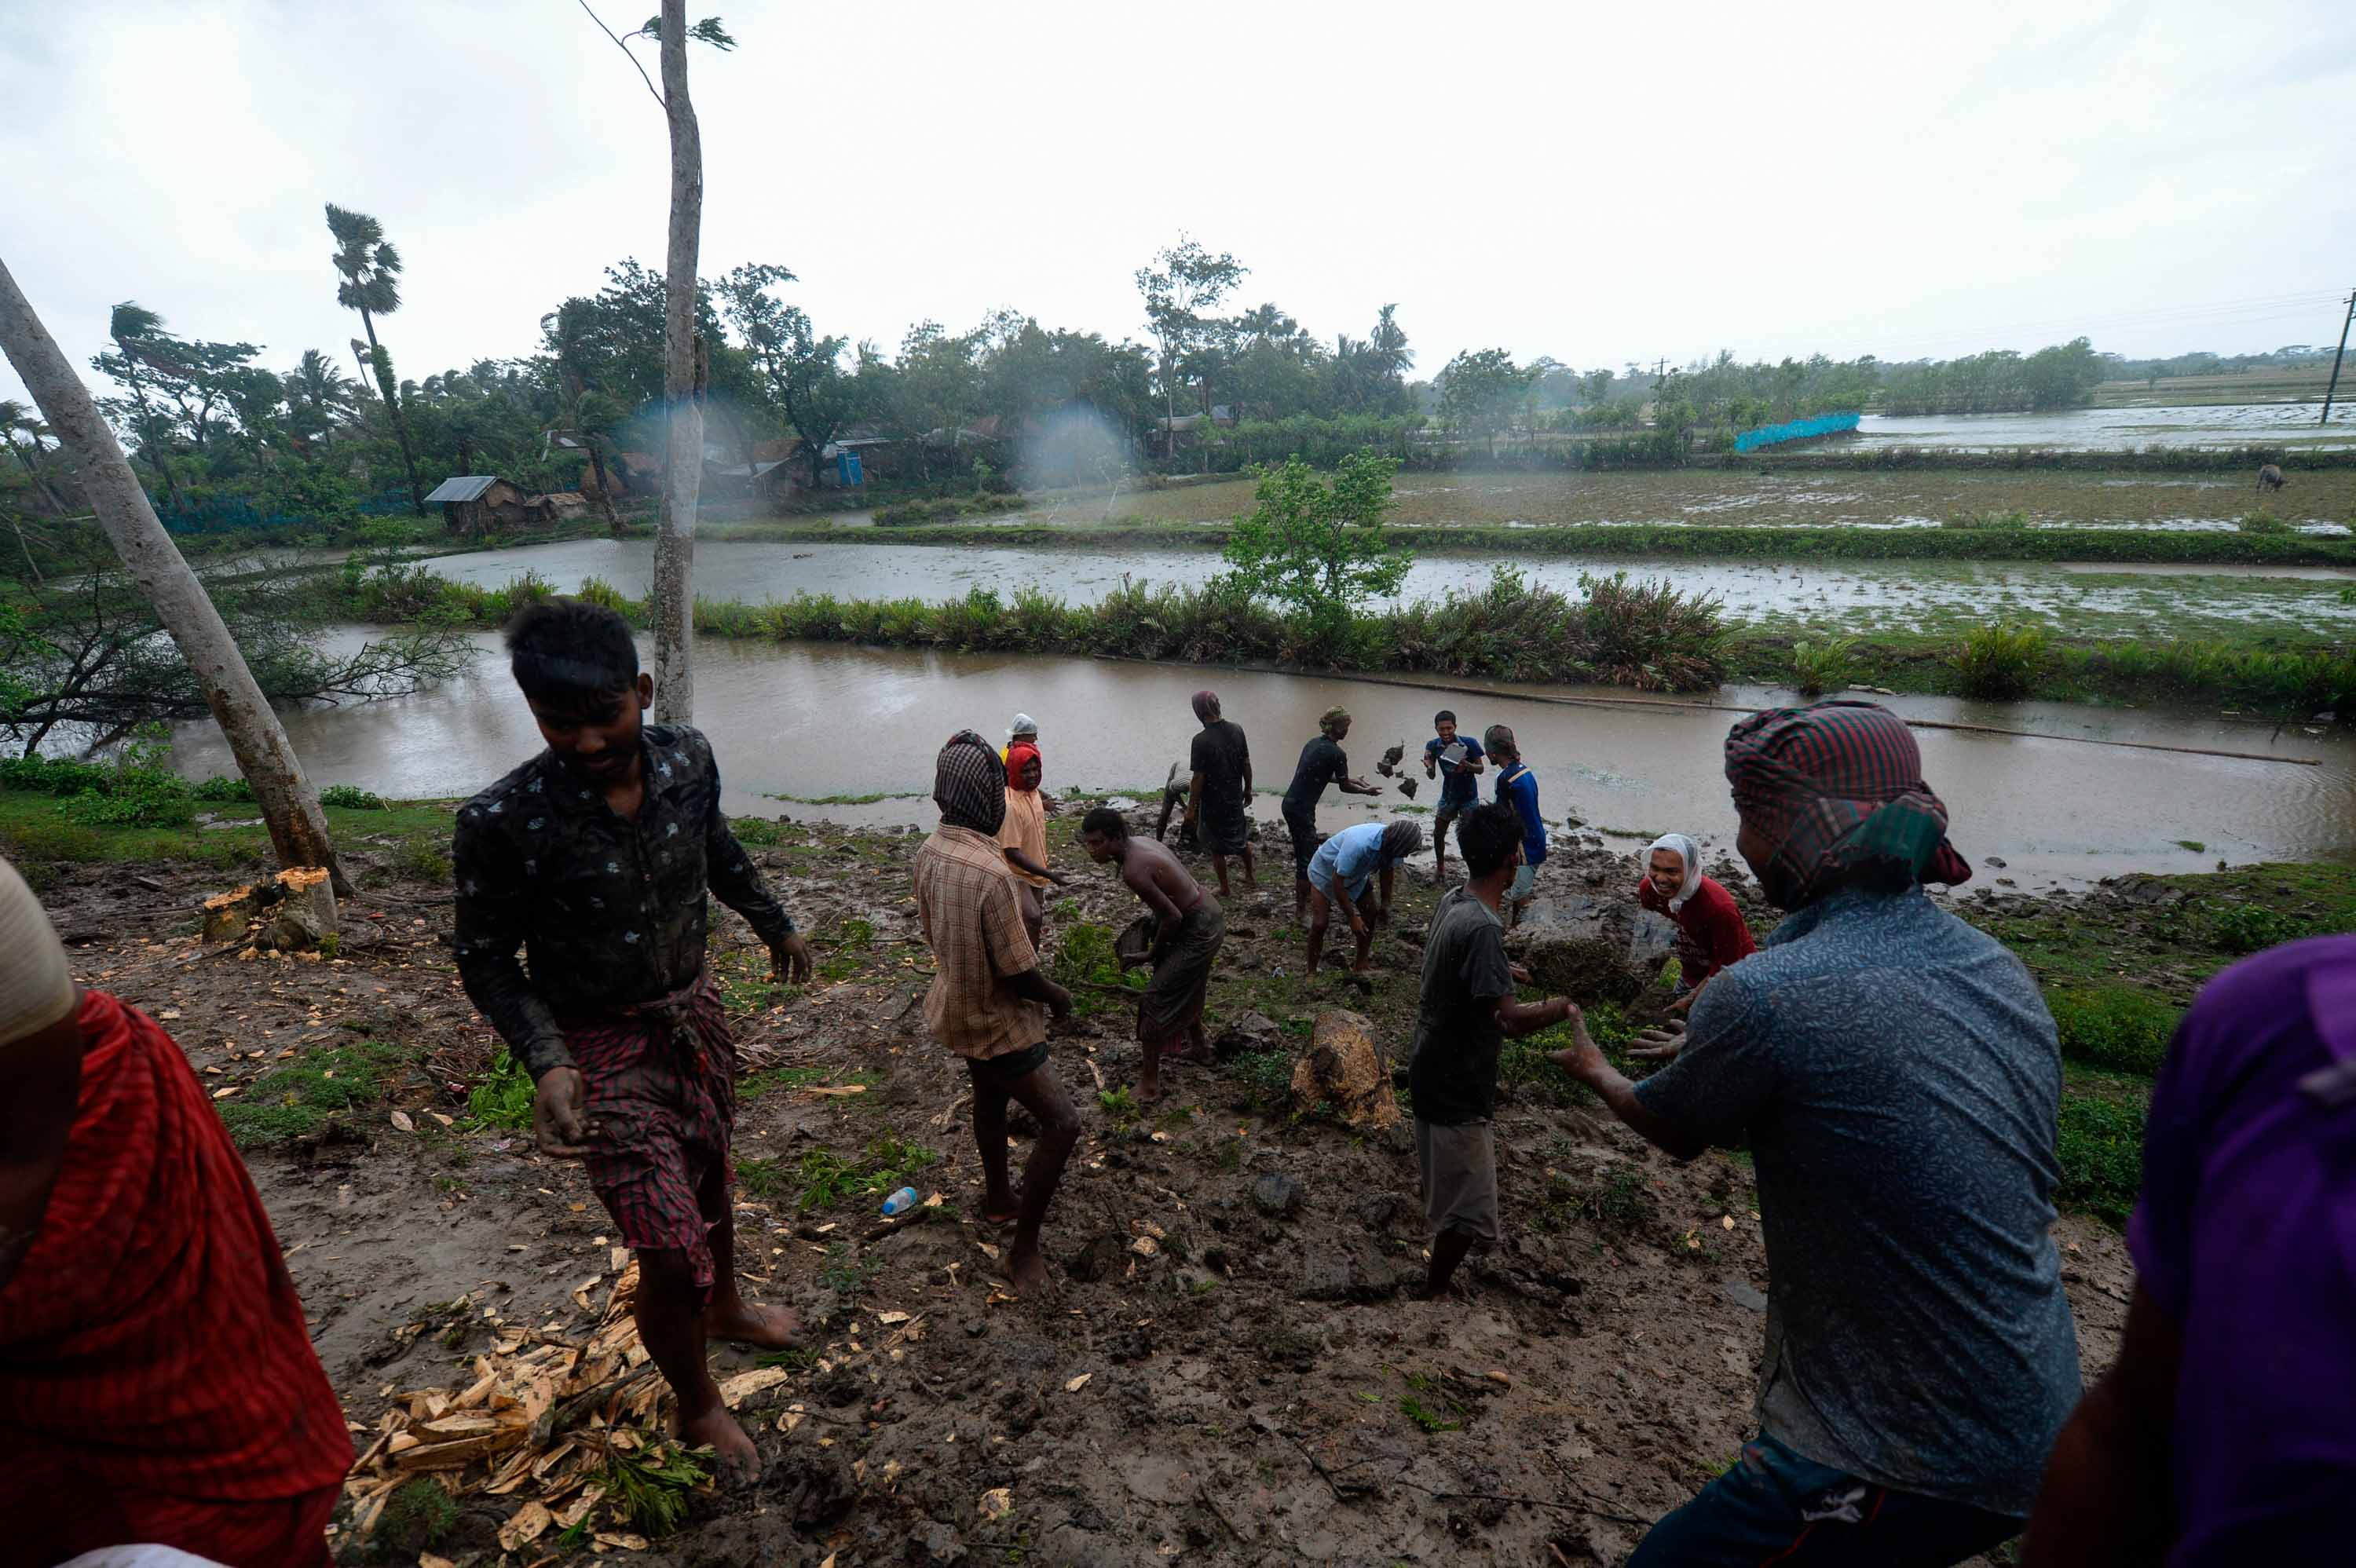 Villagers reinforce an embankment ahead of Cyclone Amphan's landfall in Dacope, Bangladesh, on May 20.